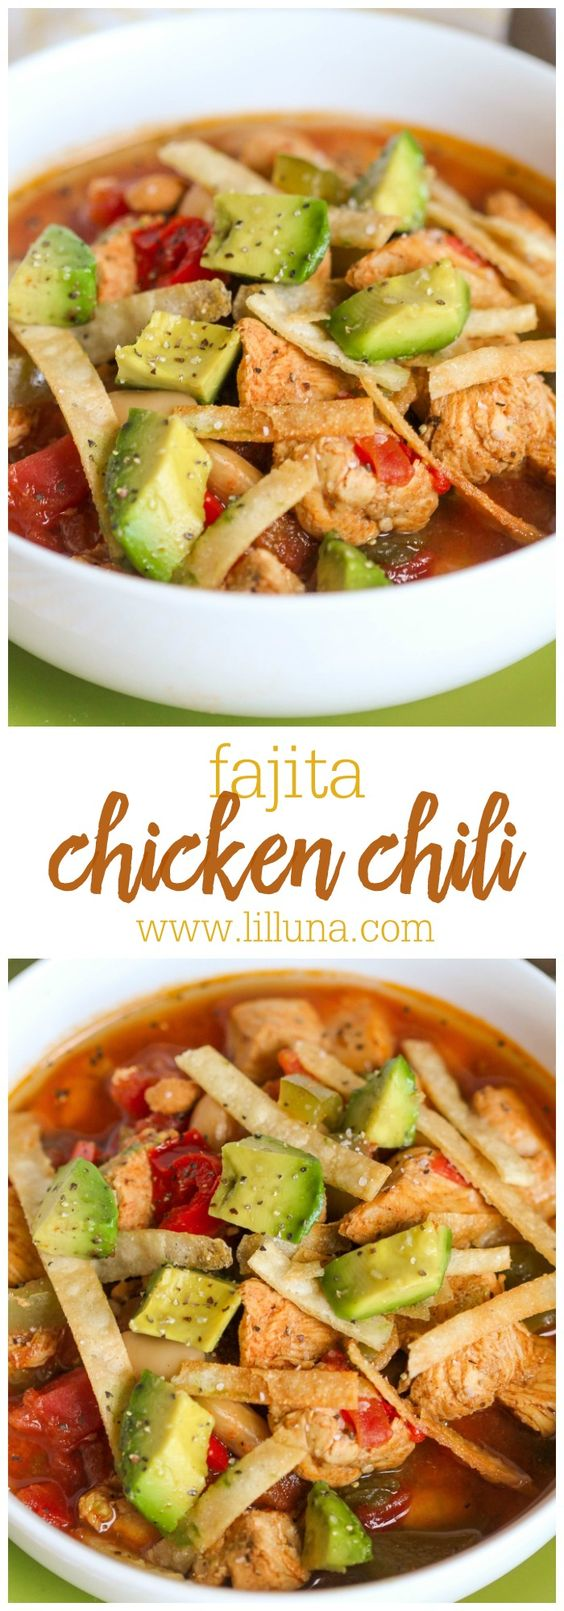 Auto Draft | Recipe | Chicken Chili, Chili and Chicken Chili Recipes